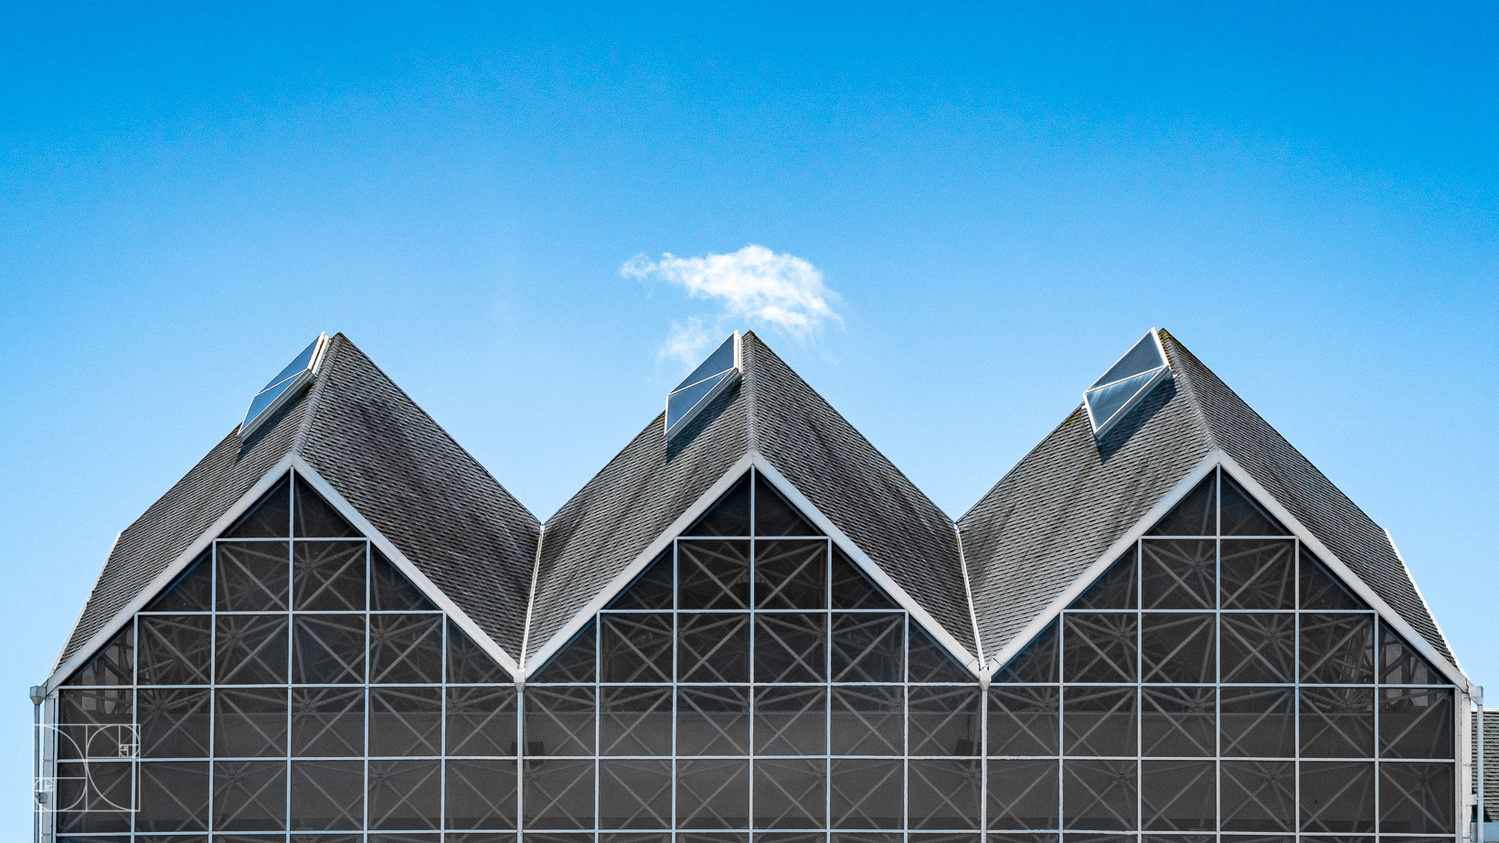 Rooftop Trio by Jesse Coleman